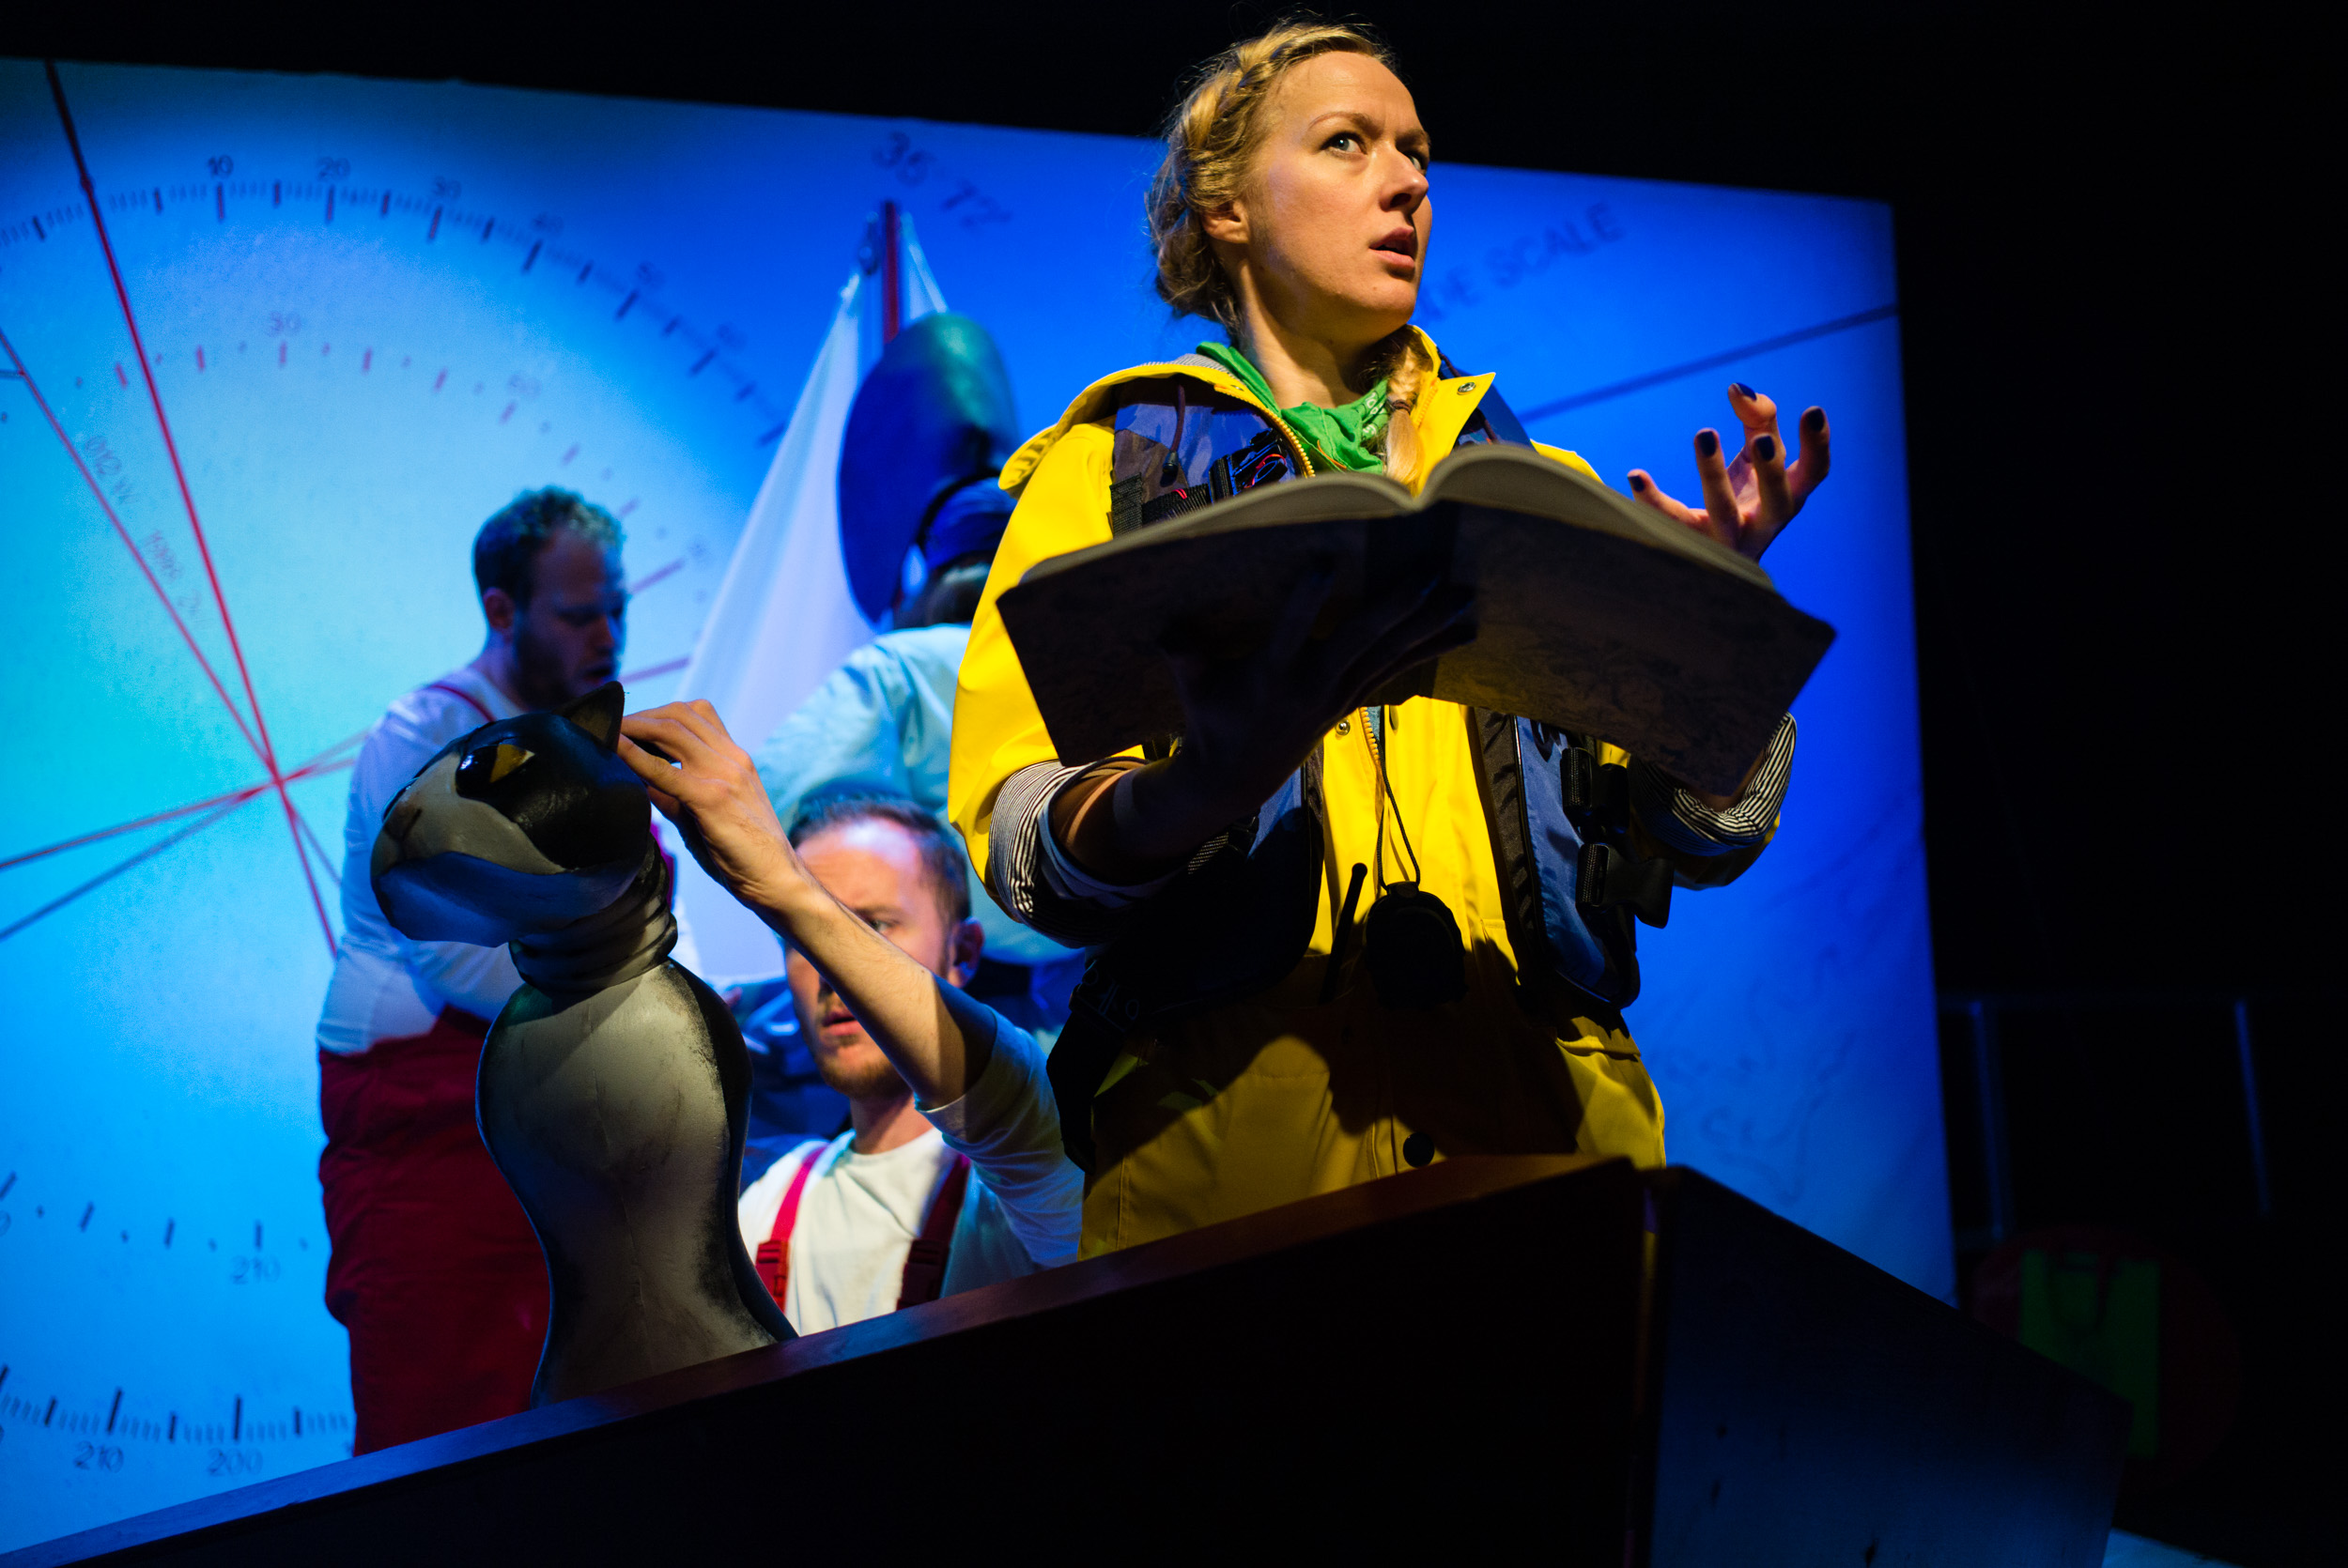 Ulla's Odyssey. OperaUpClose, Kings Place. Sarah Minns. Photo by Christopher Tribble.